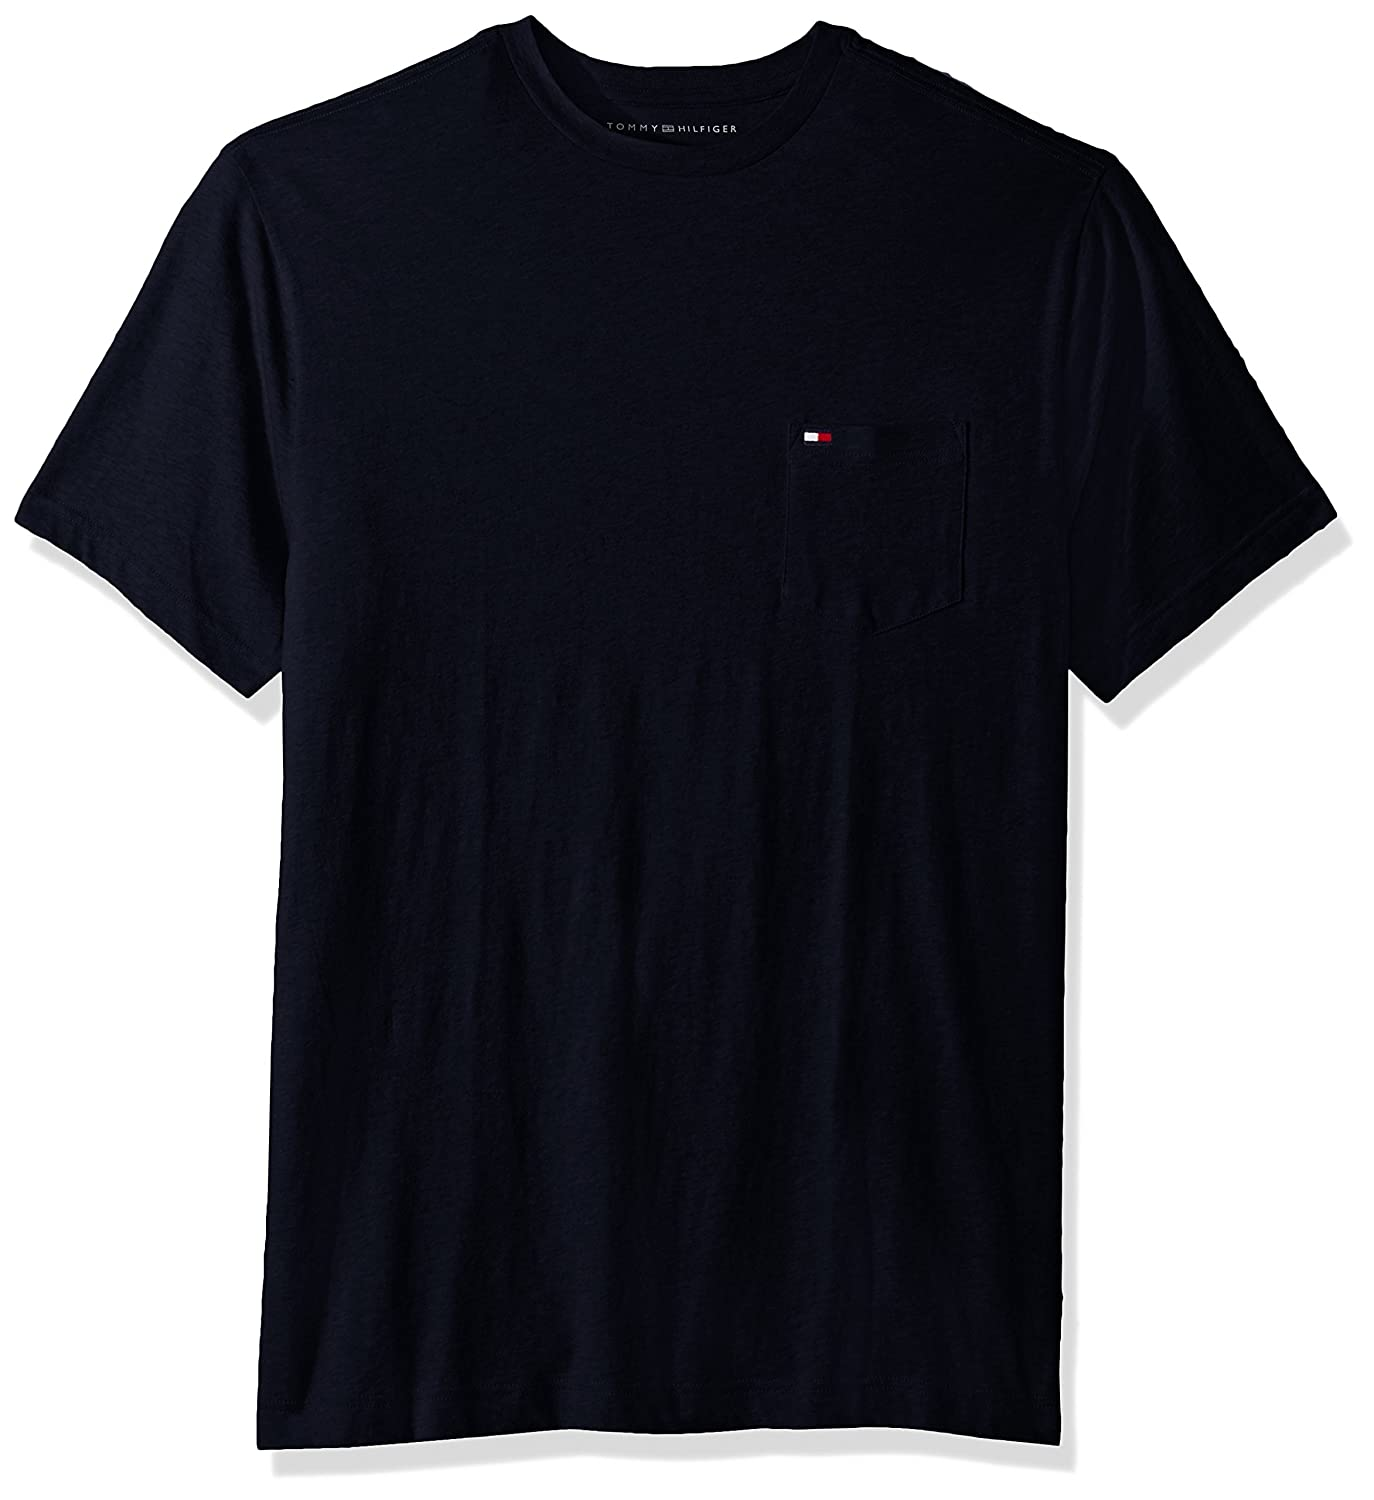 1dd07991e Amazon.com  Tommy Hilfiger Men s Big and Tall T Shirt with Pocket  Clothing